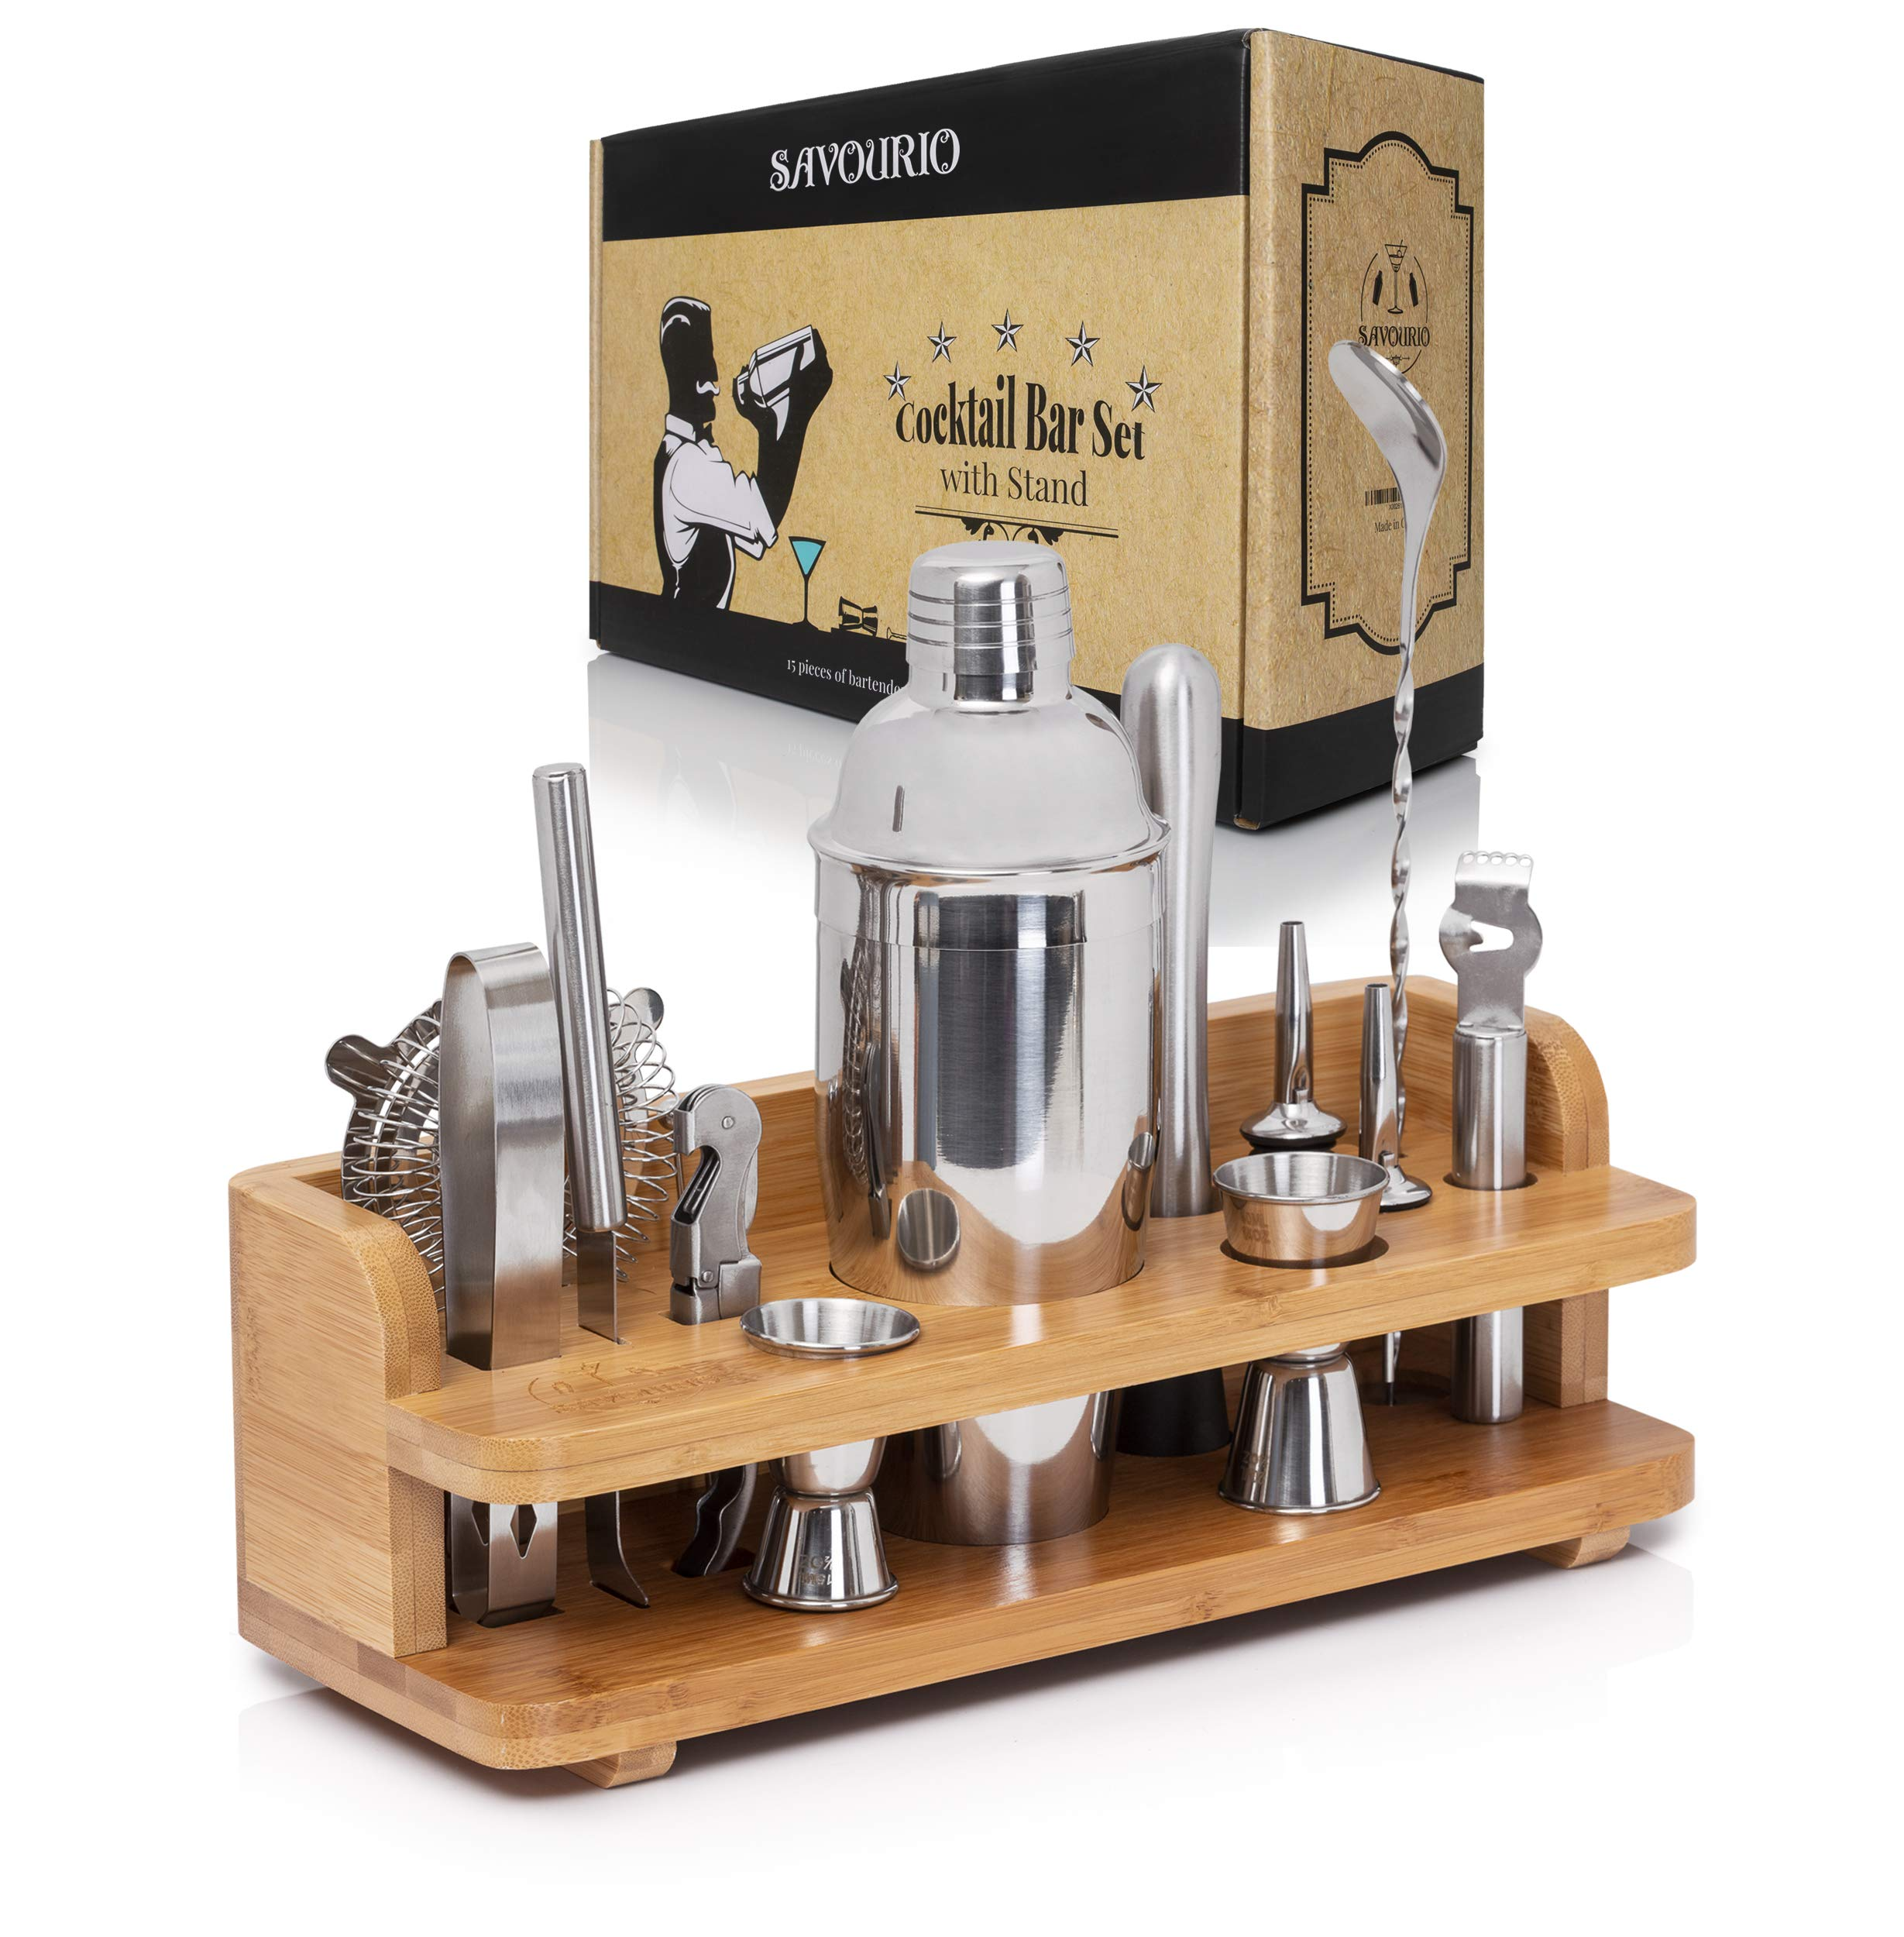 Savourio Bartender Kit Cocktail Shaker Bar Set - Complete 15-Piece Premium Quality Stainless Steel Utensils - Sleek & Elegant Design - Practical Wood Stand Included by Savourio